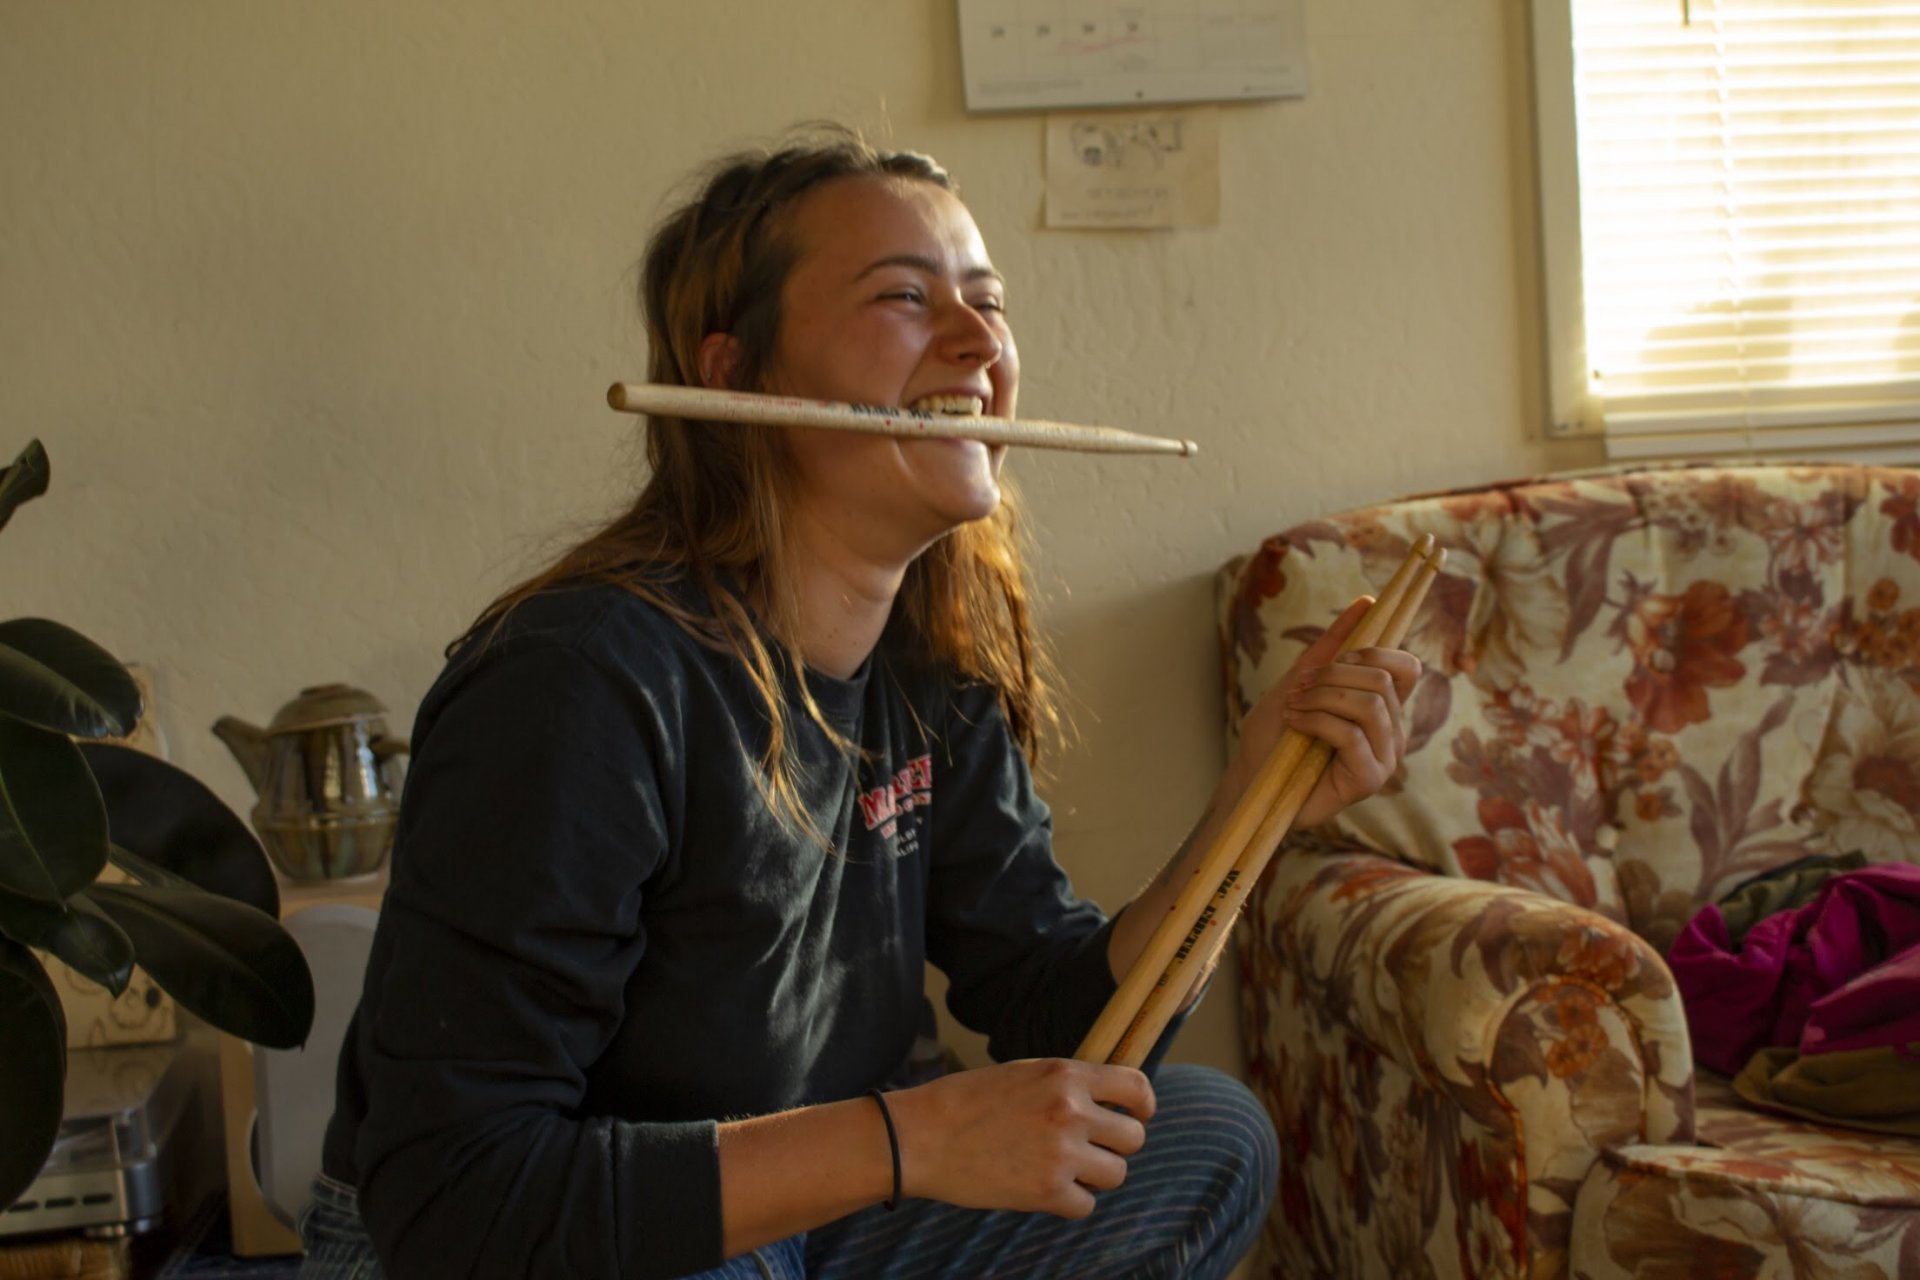 Kyra Teevan poses with her drumsticks on Nov. 2 in her home. | Photo by Deven Chavannes